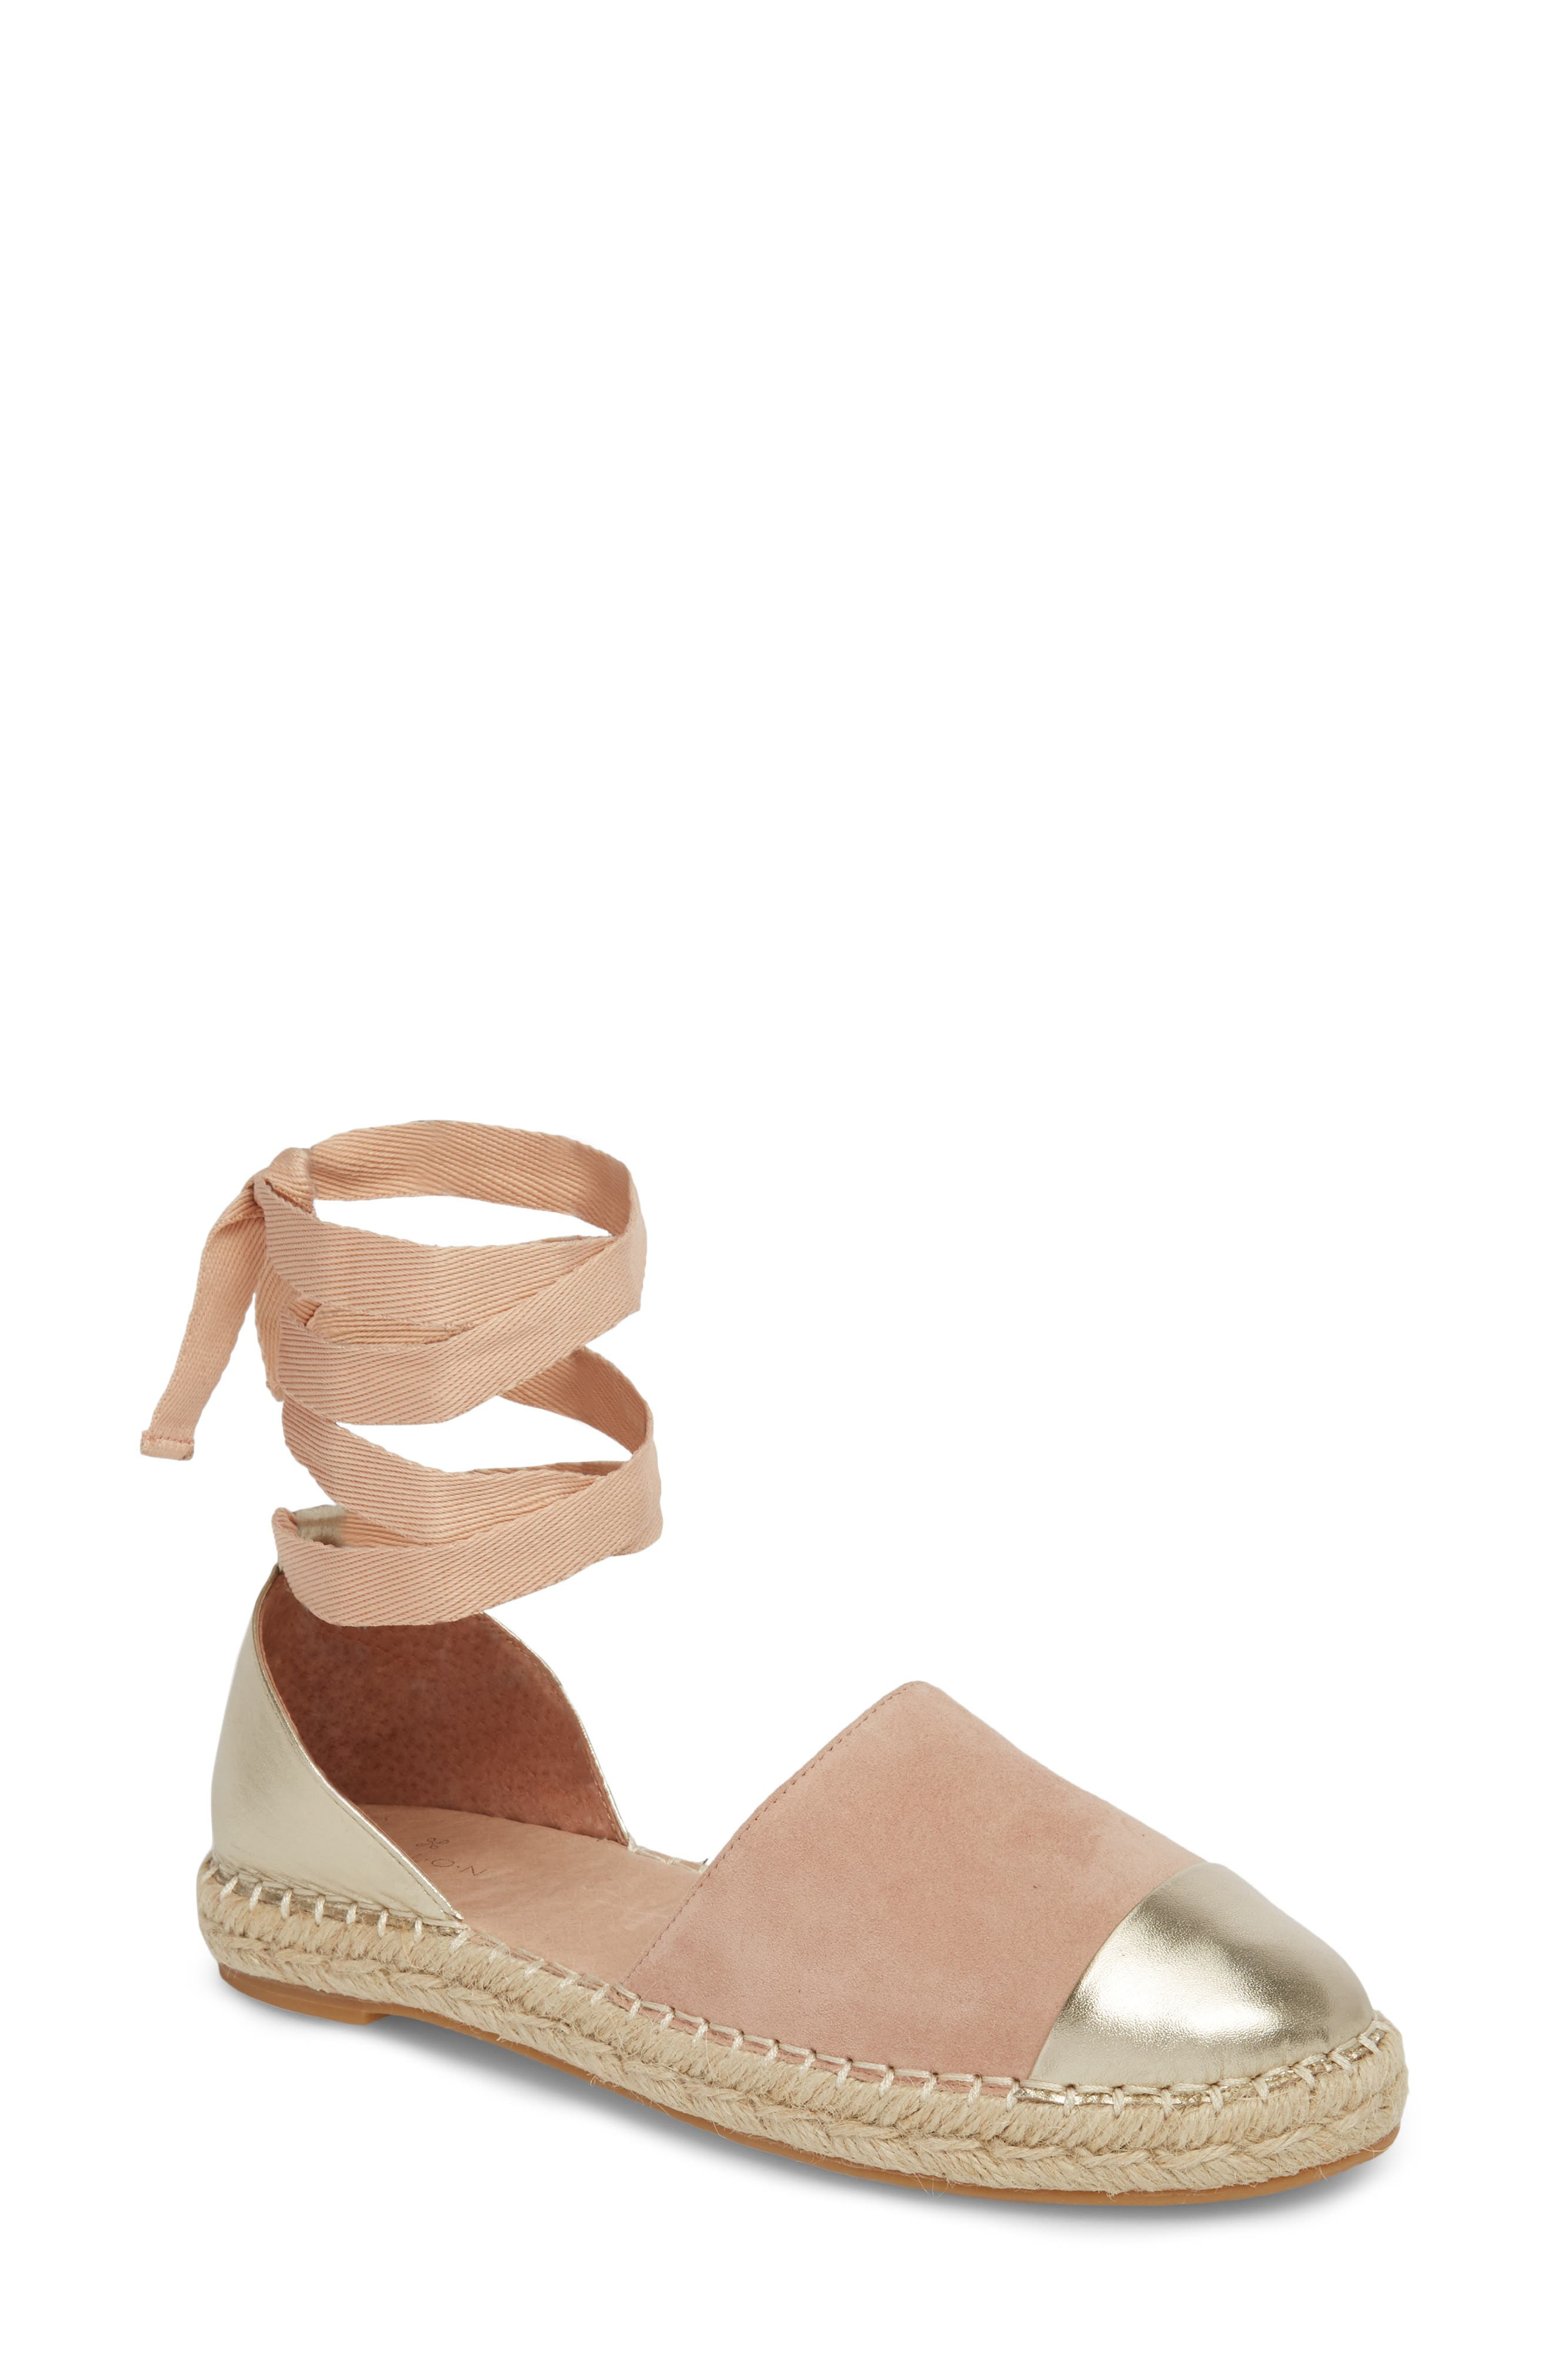 Cain Ankle-Tie Sandal,                         Main,                         color, Nude Suede/ Gold Leather